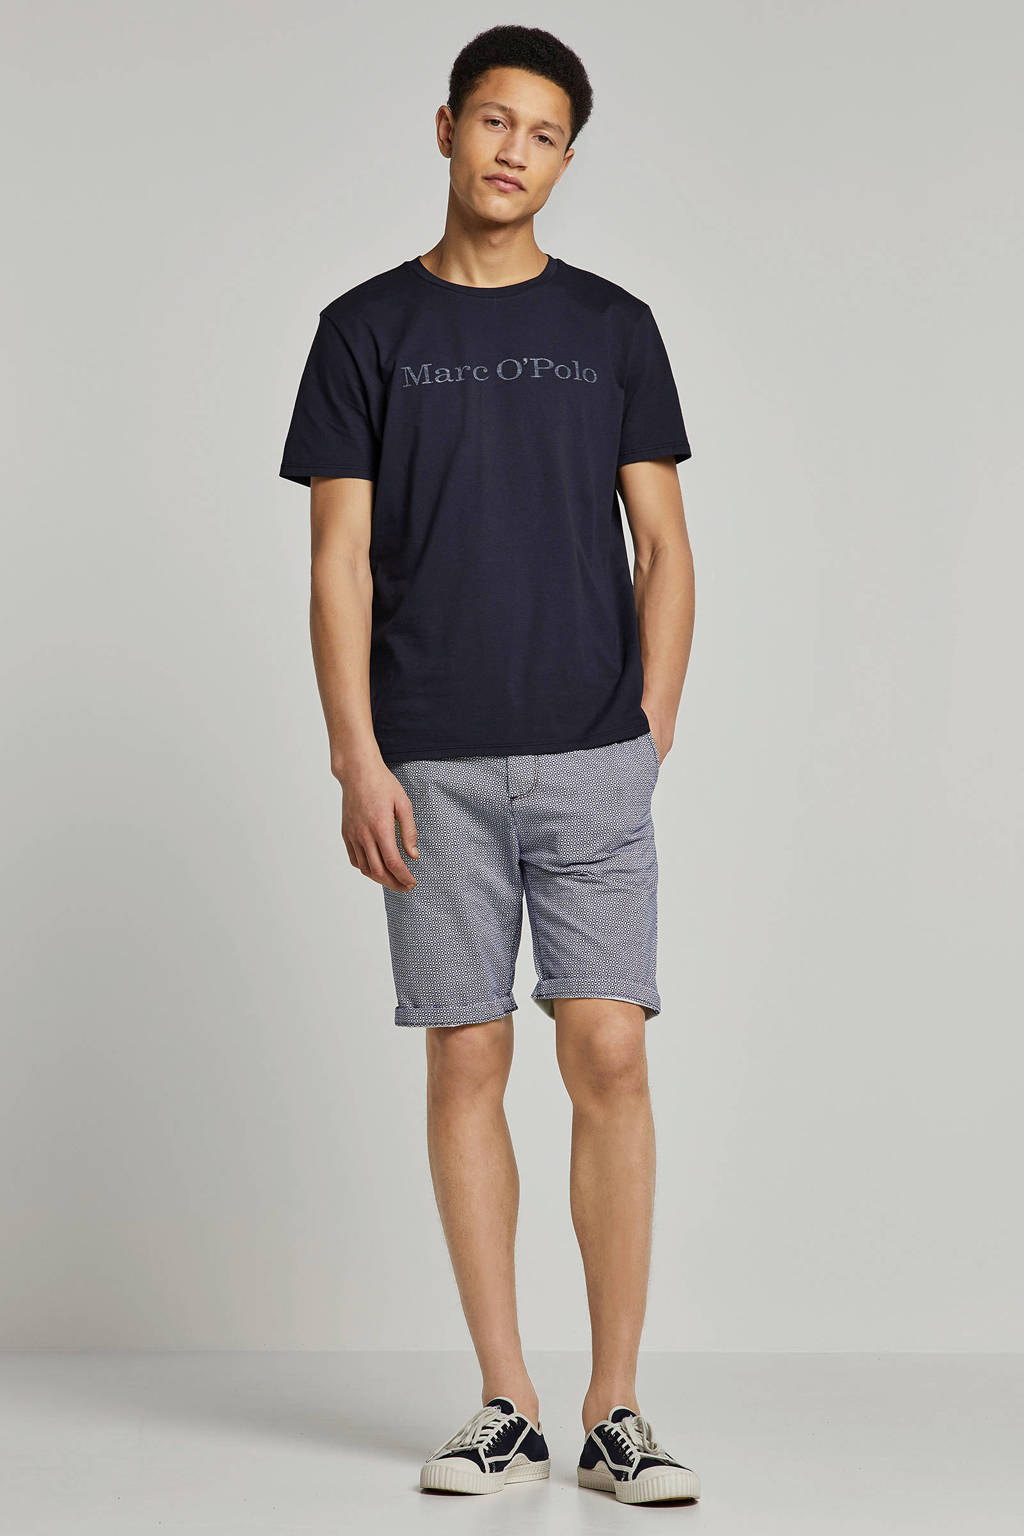 Marc O'Polo t-shirt, Donkerblauw